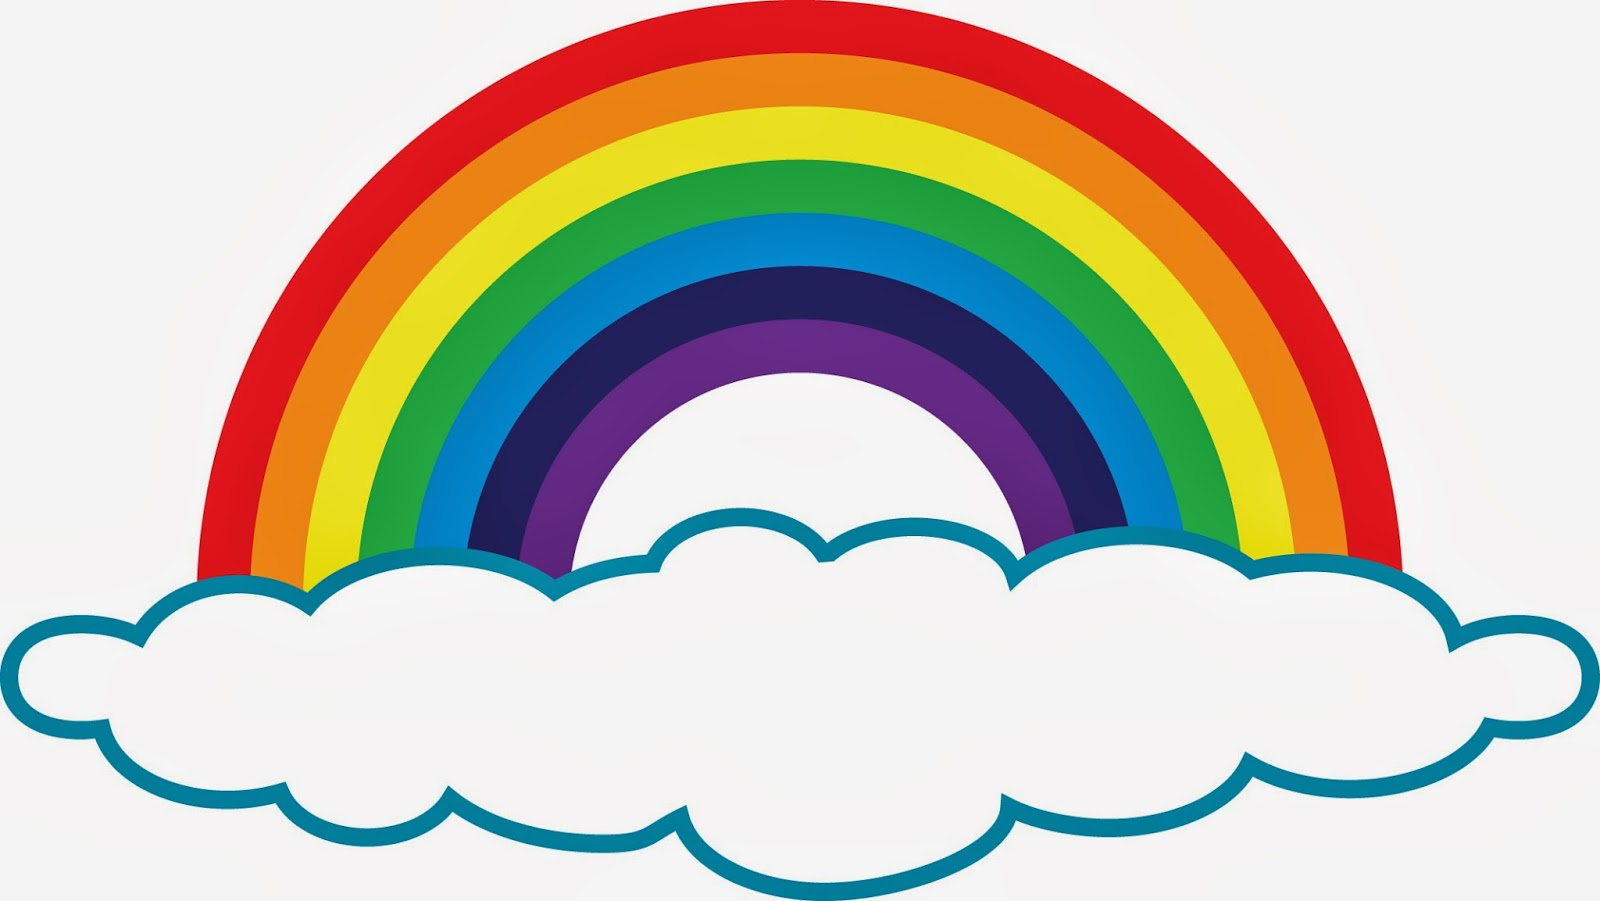 Rainbow and clouds clipart download Free Images Of A Rainbow, Download Free Clip Art, Free Clip Art on ... download